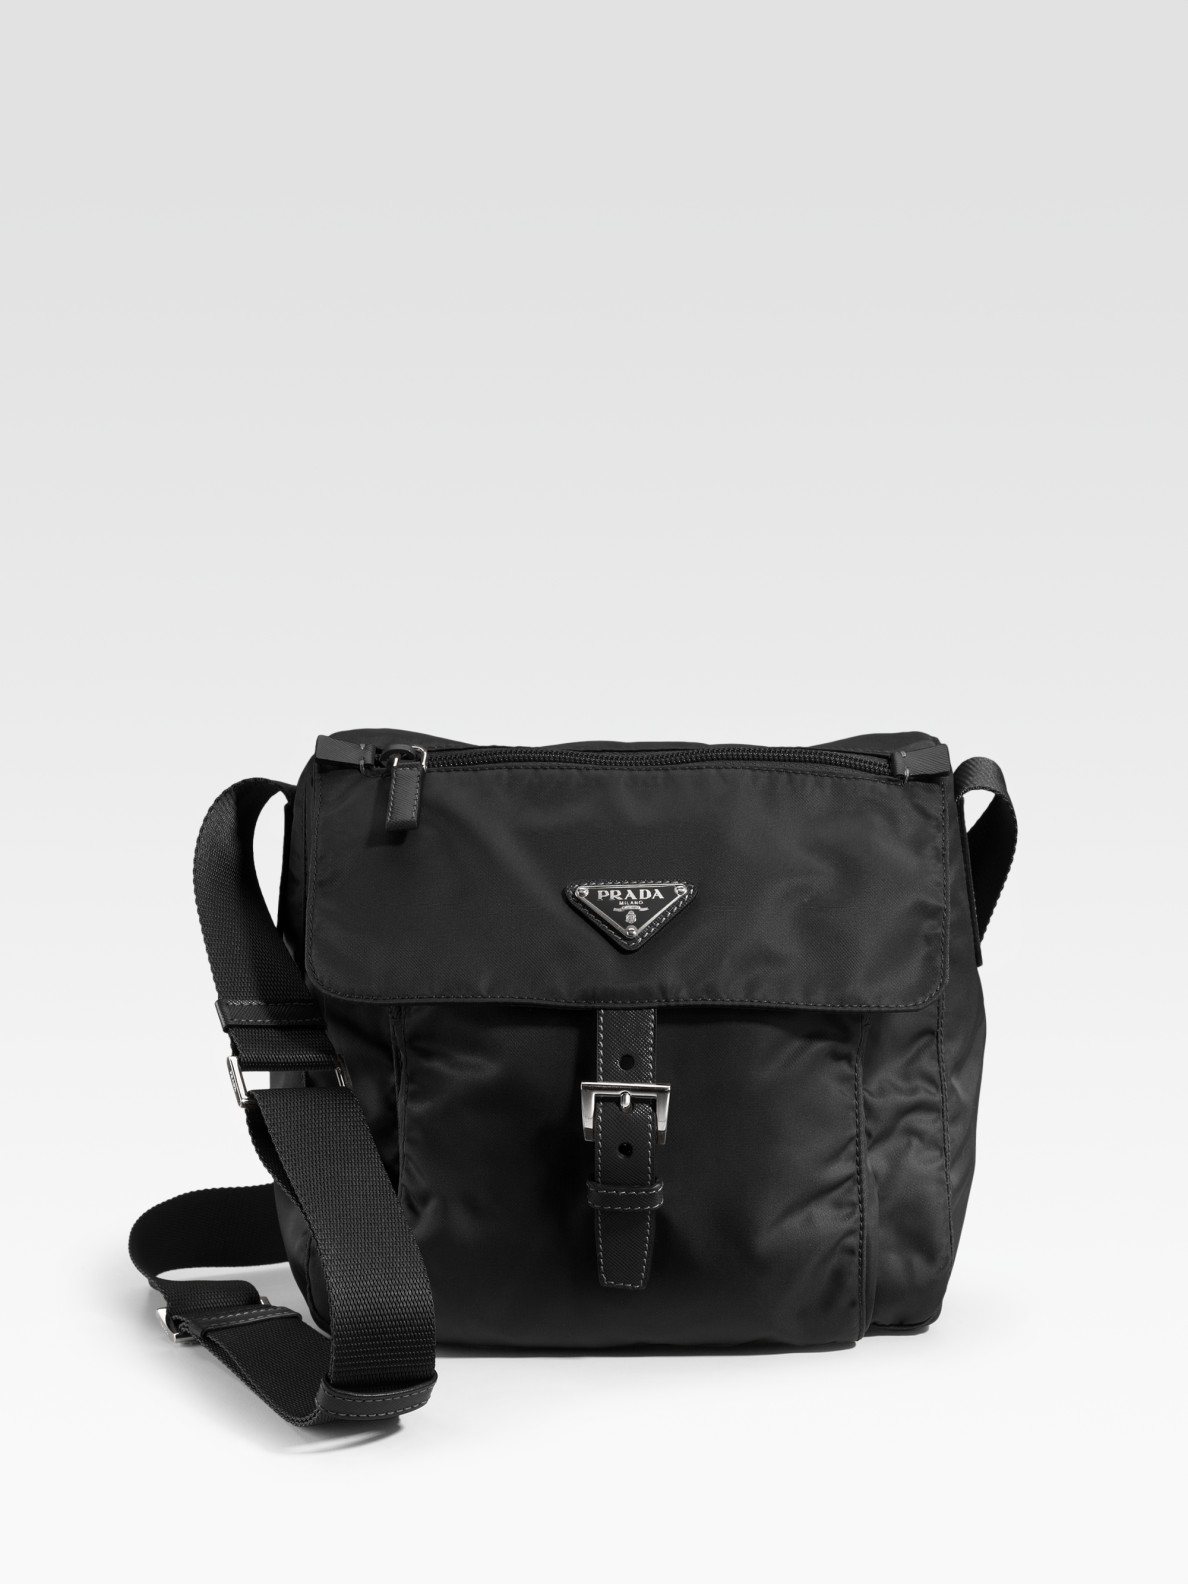 Nylon Messenger Bag Black 57